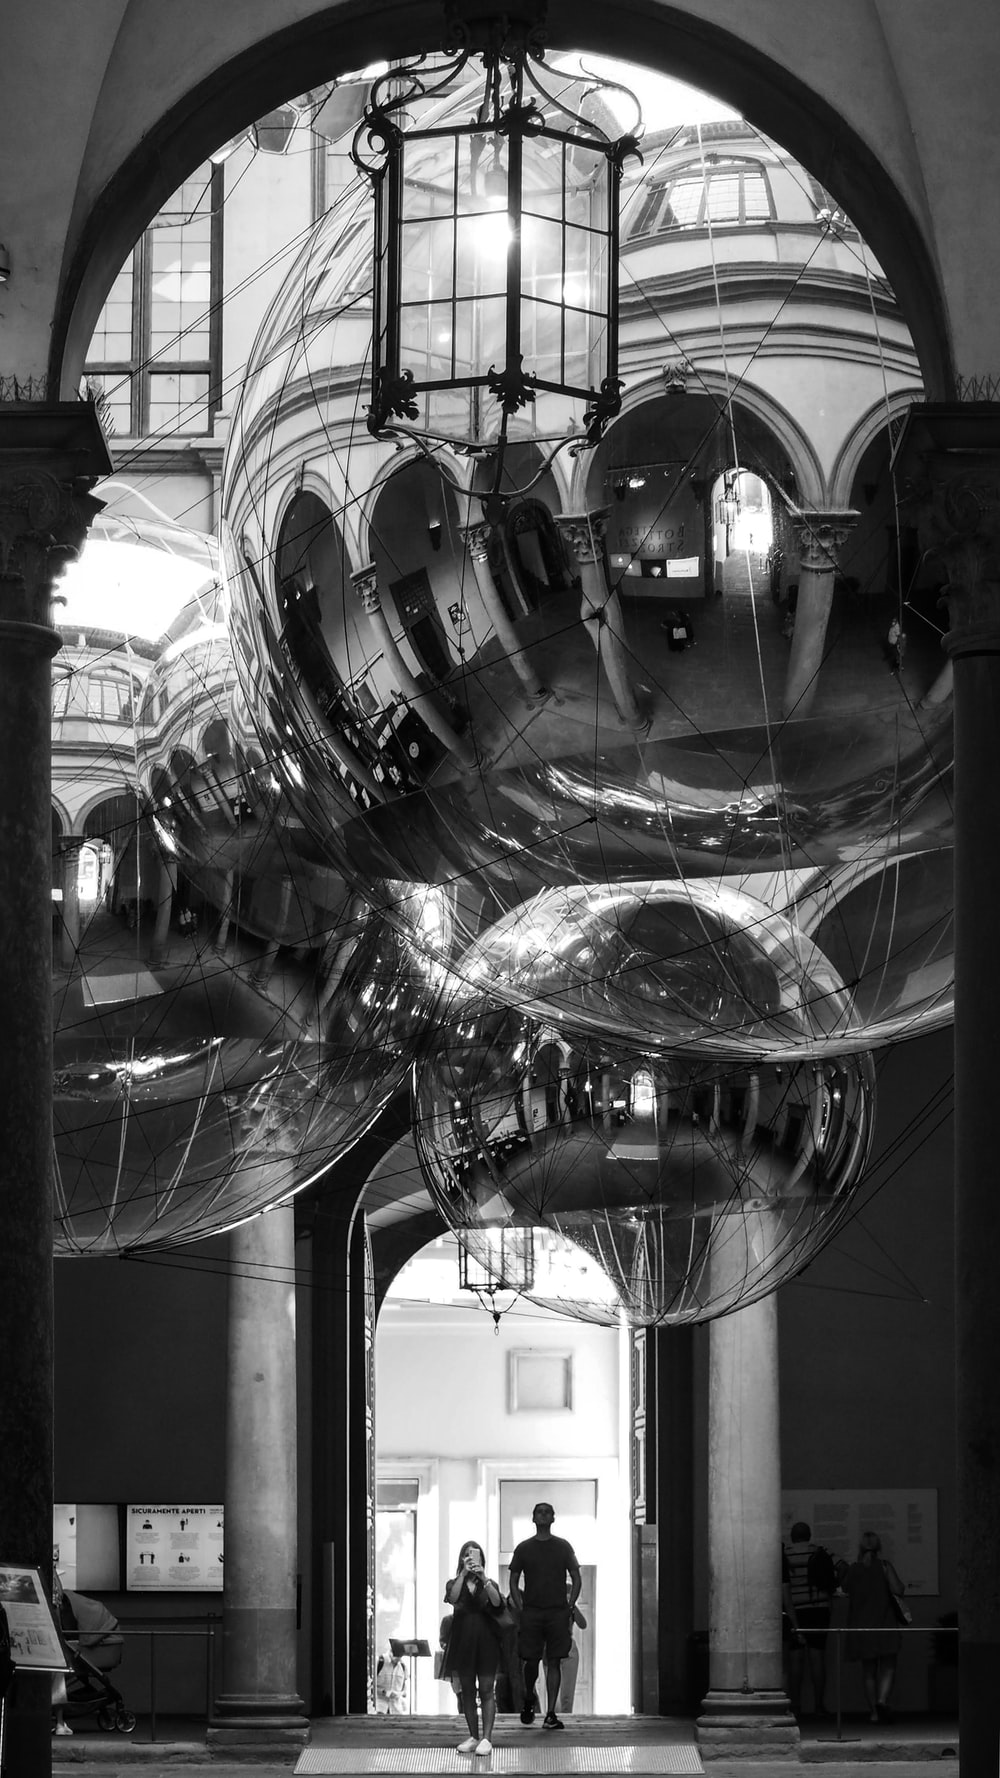 grayscale photo of clear glass ball